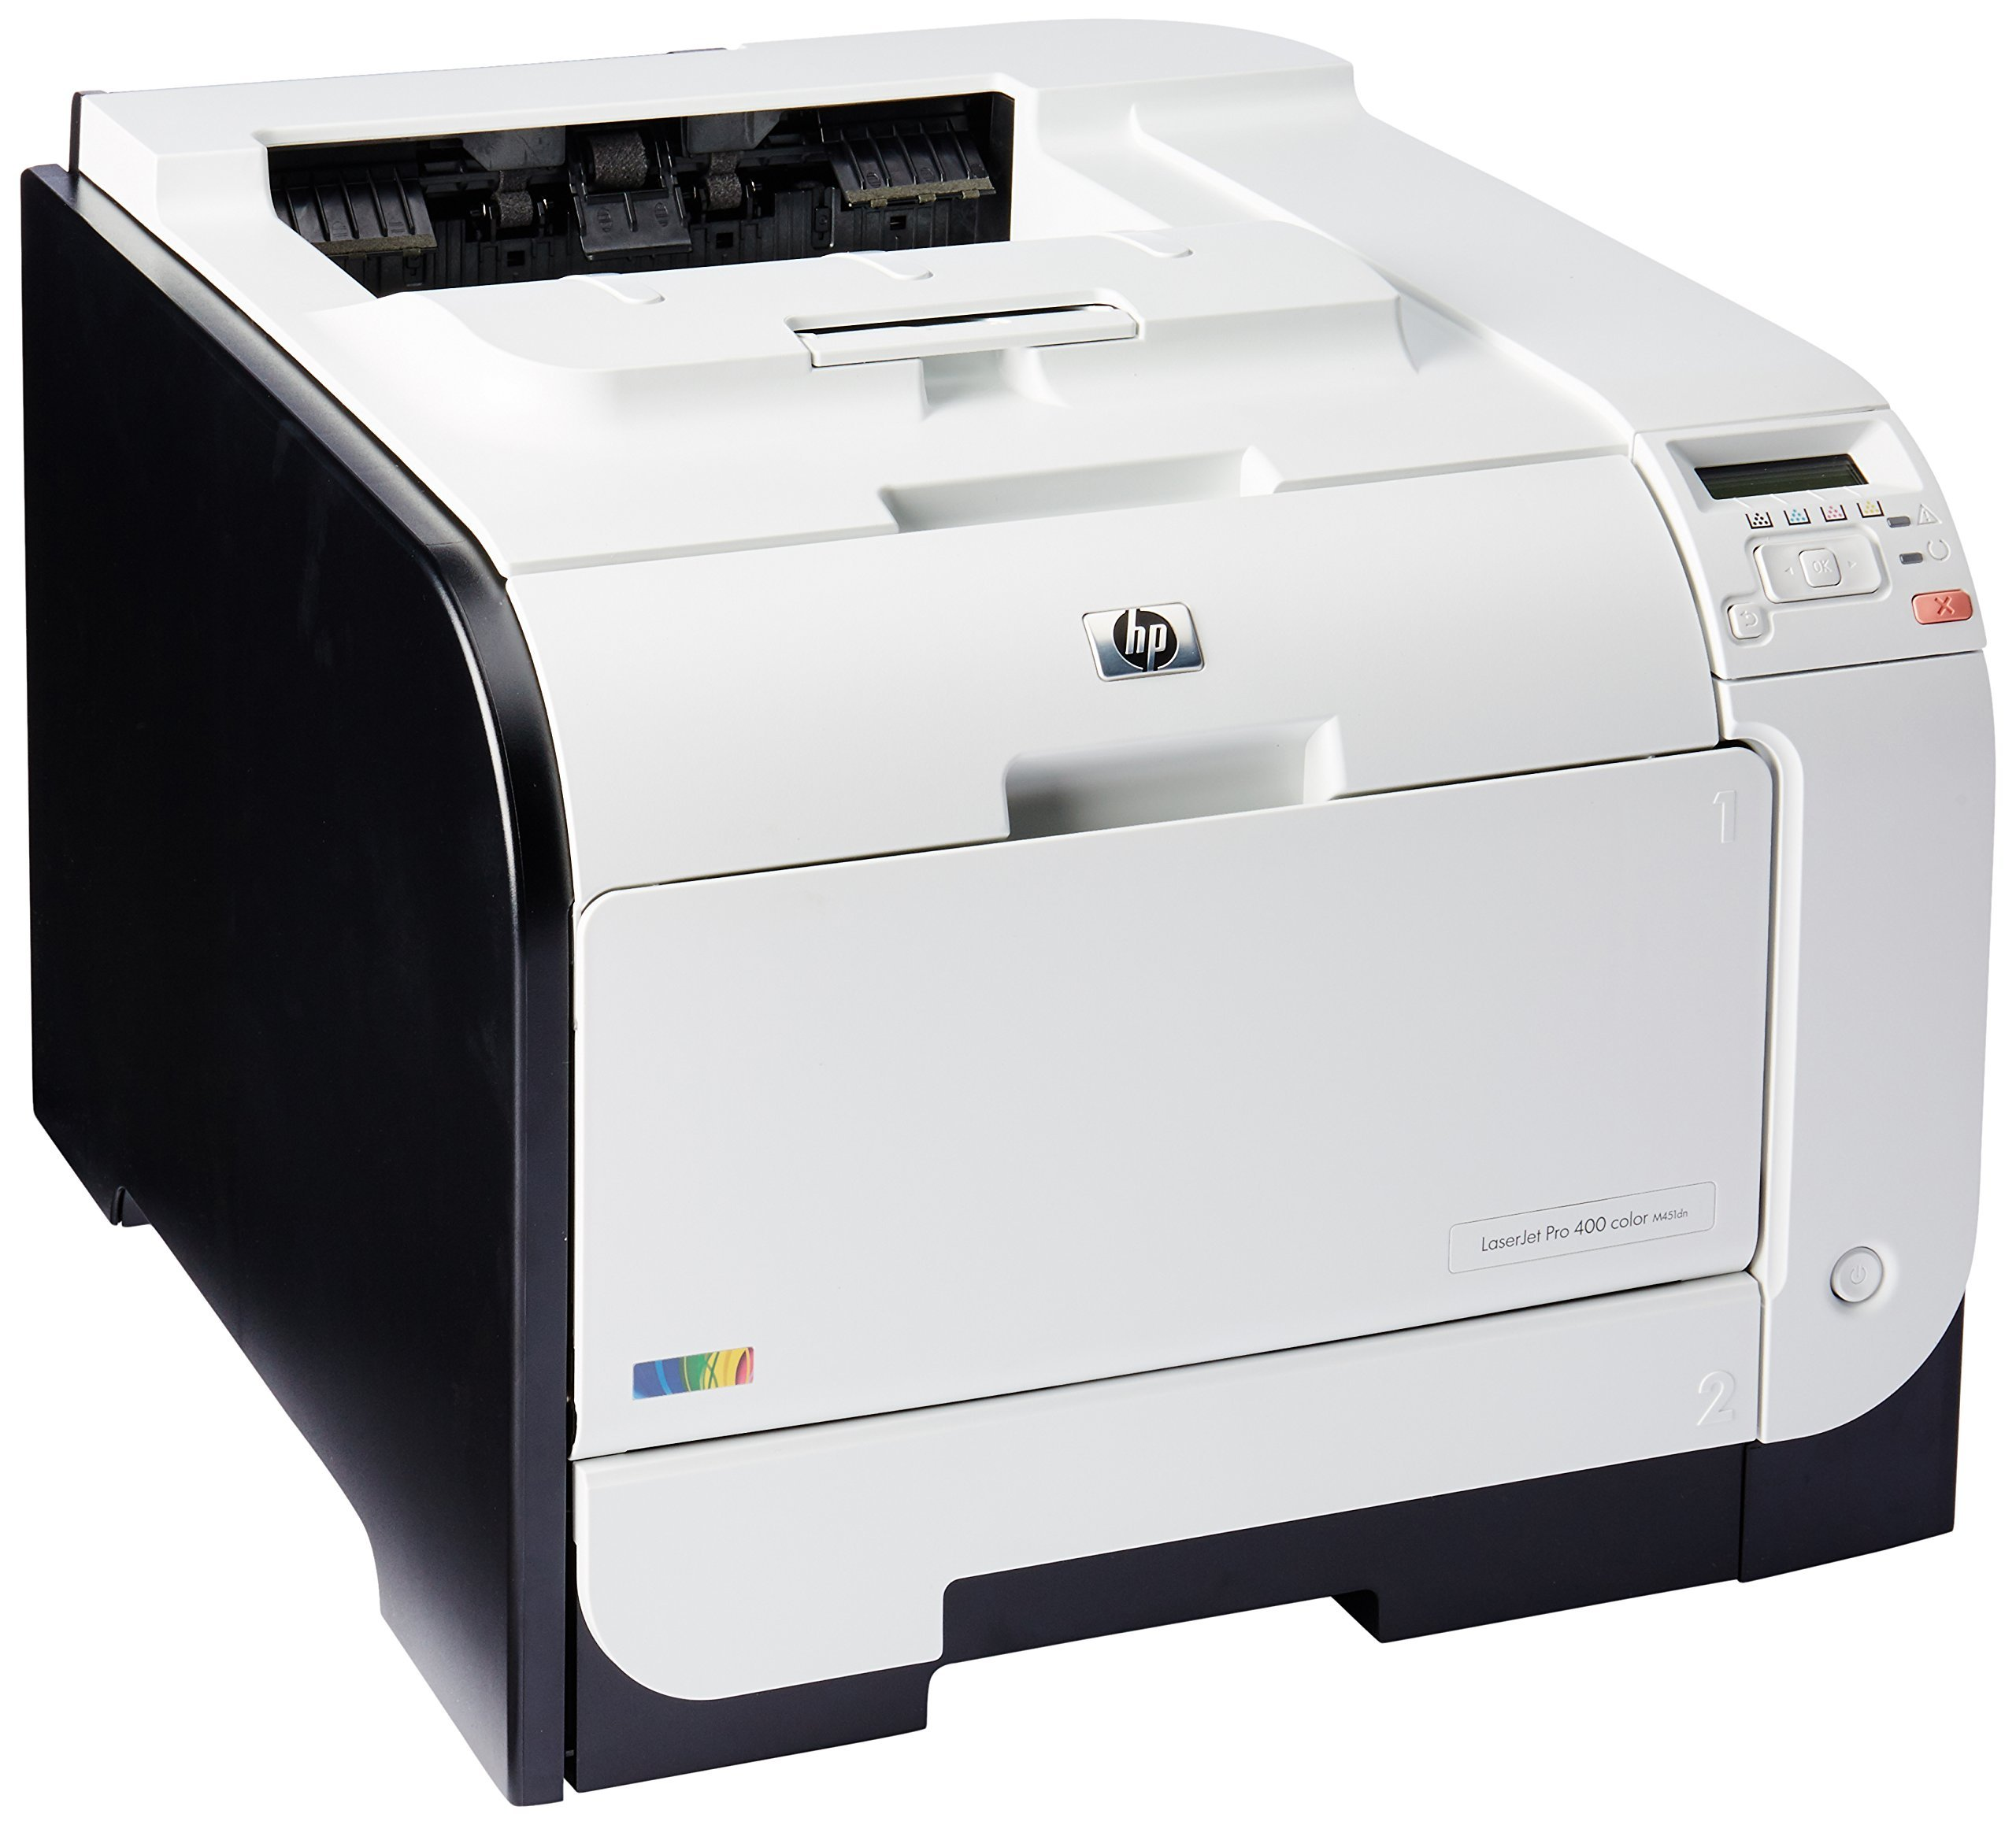 HP Laserjet Pro M451dn Color Printer (Discontinued by Manufacturer) (Renewed) by HP (Image #1)